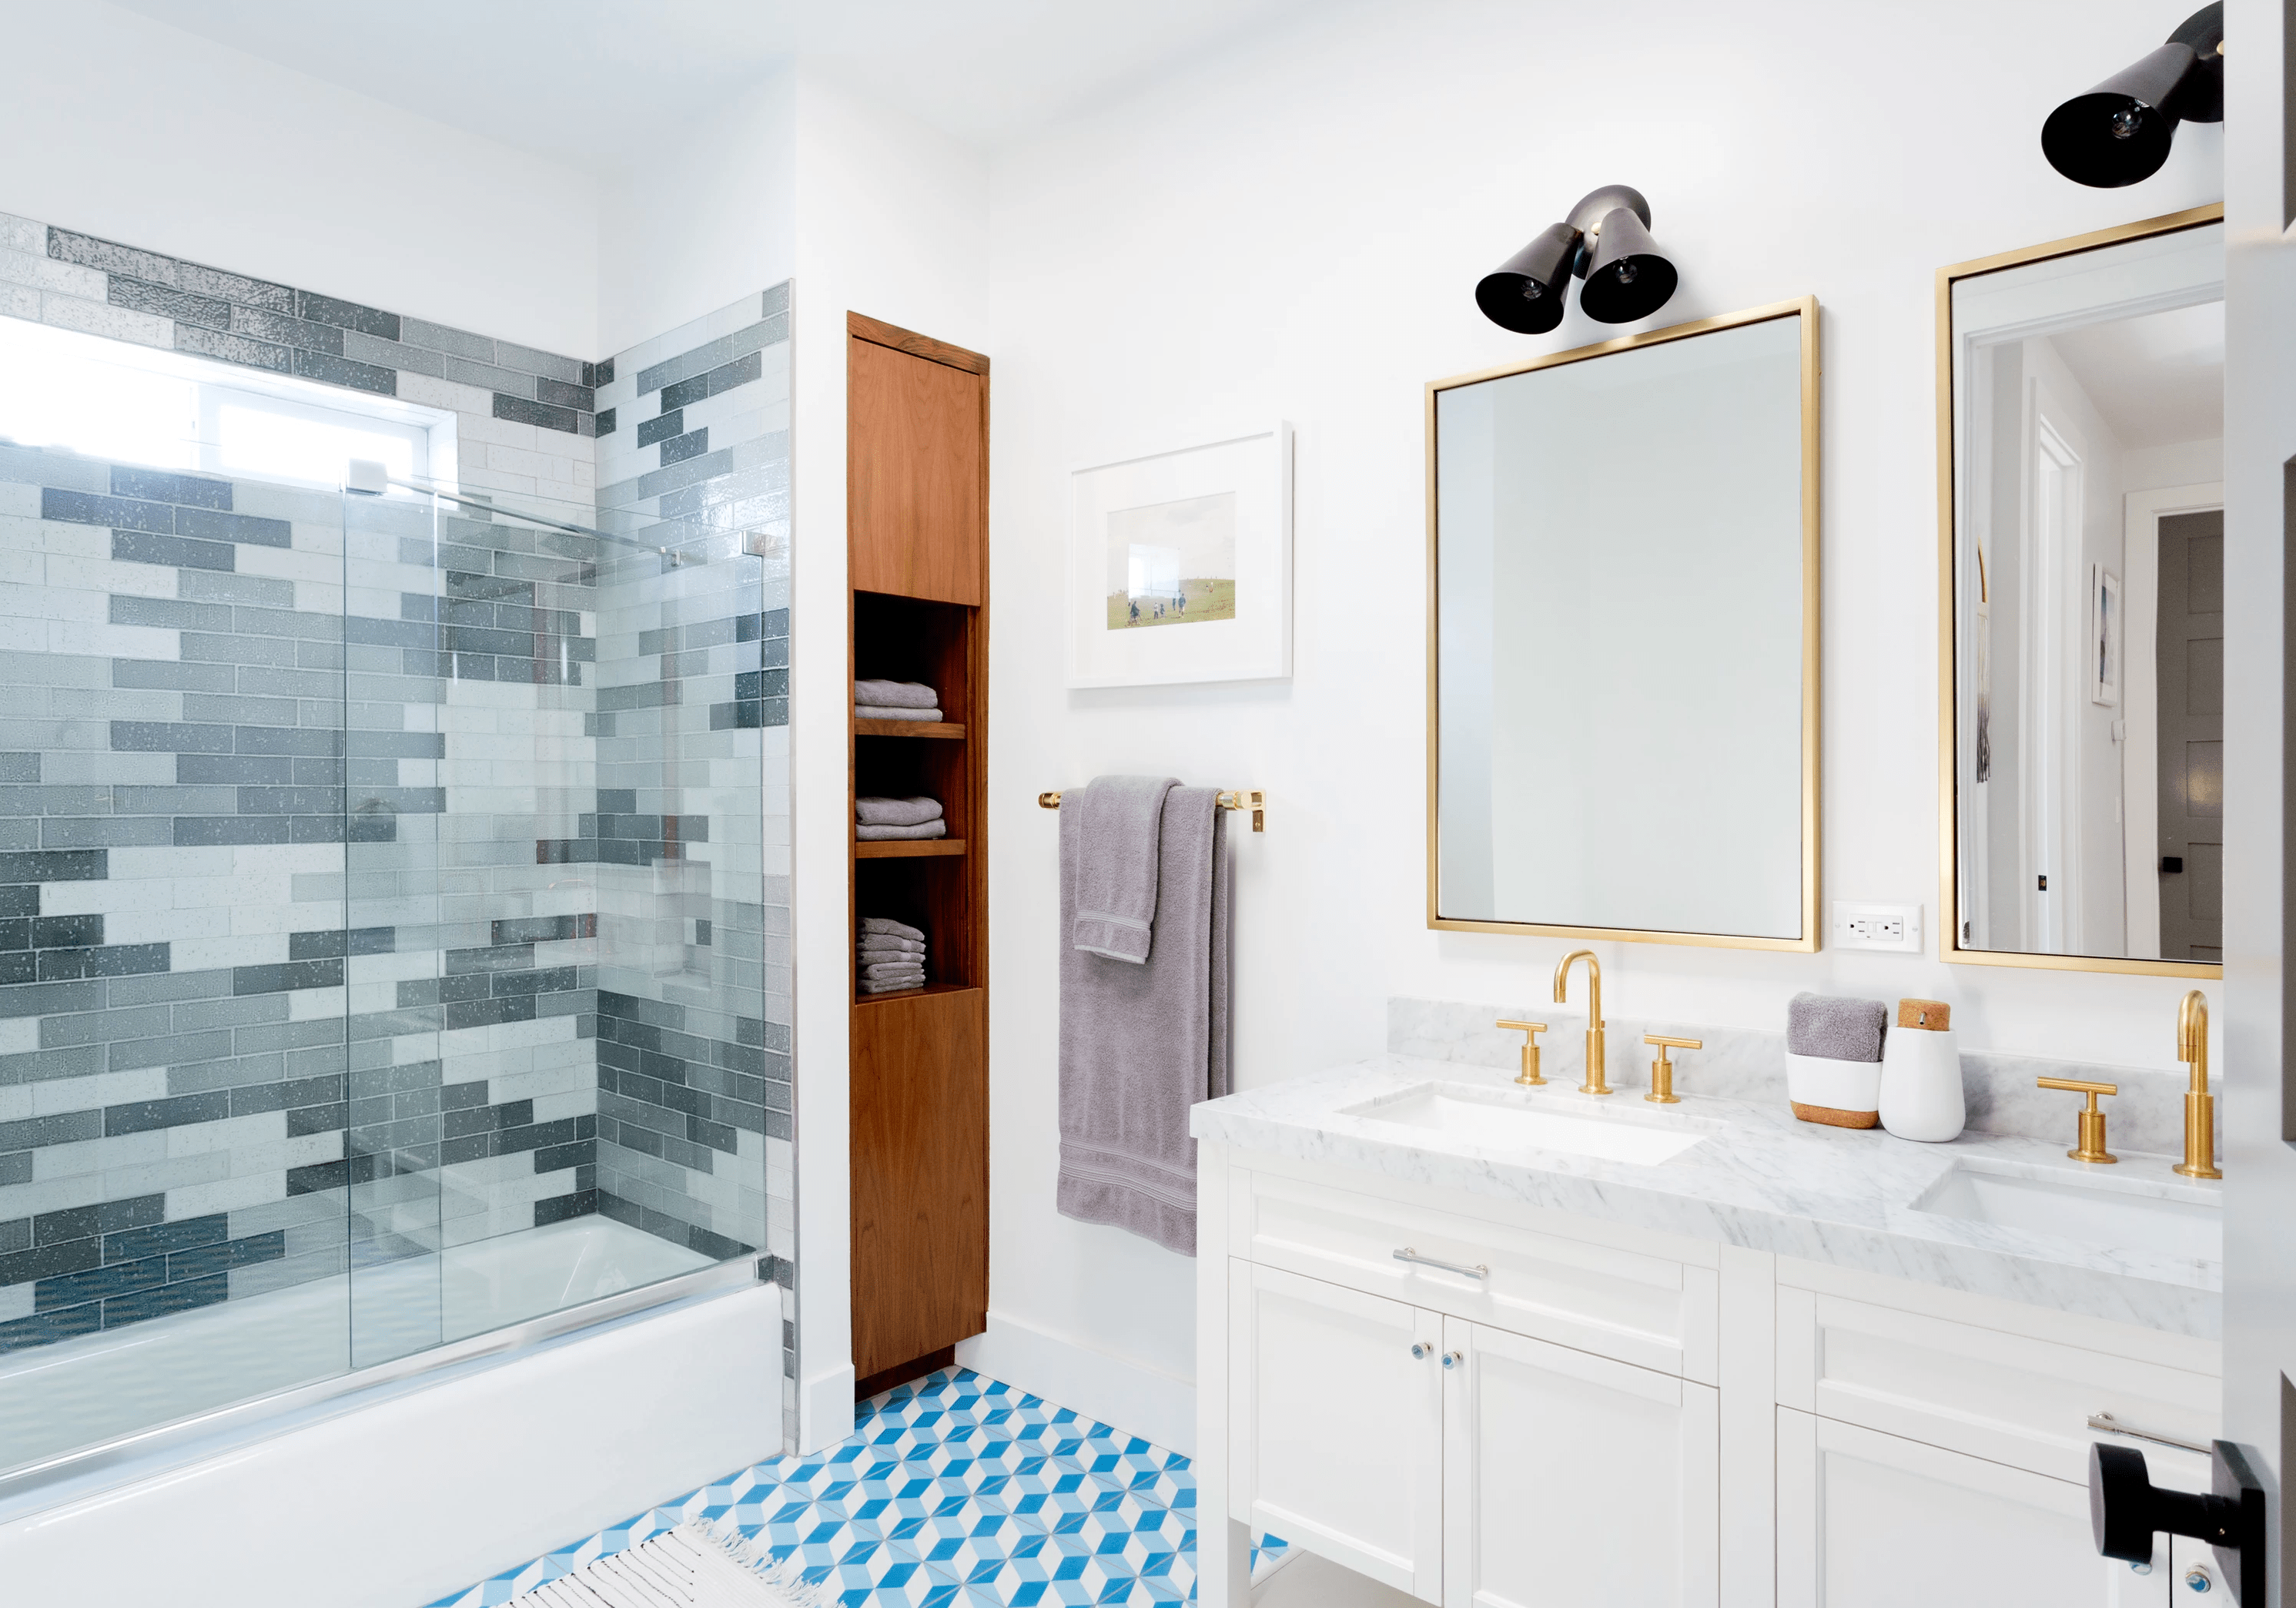 Subway Tiled Bathrooms 10 Best Subway Tile Bathroom Designs In 2018 Subway Tile Ideas